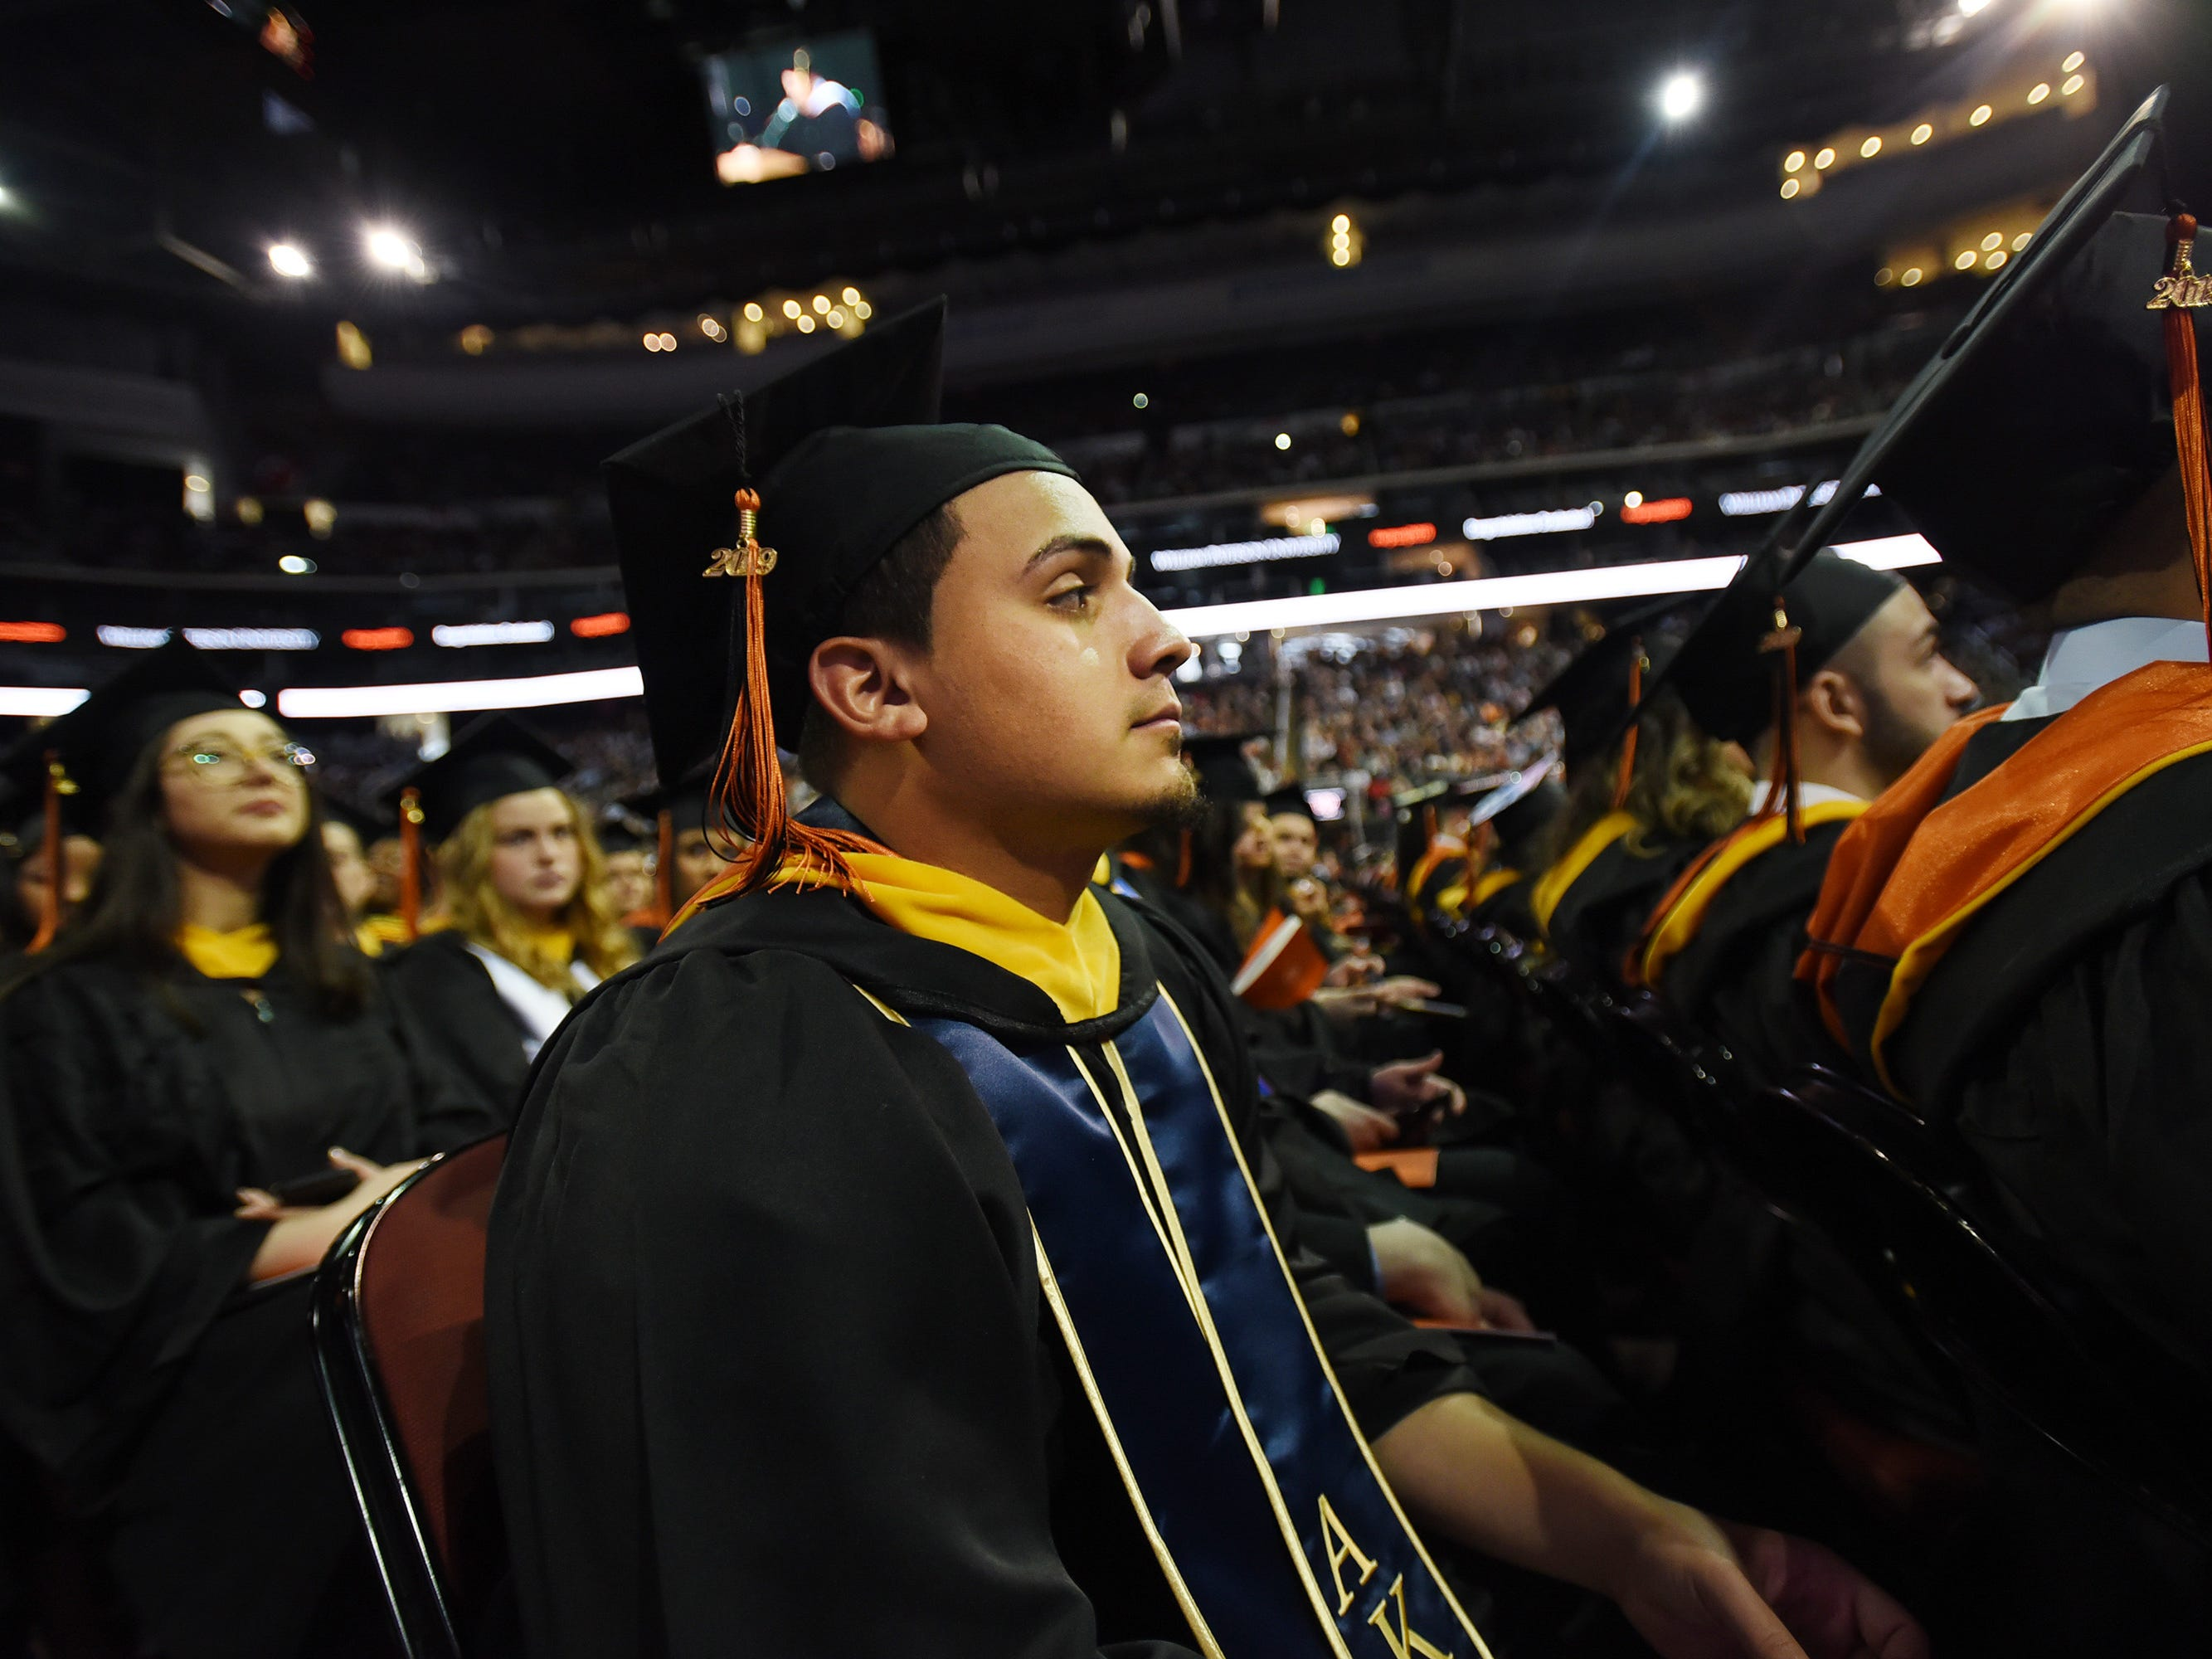 Javin Soto of Hawthorne, Major in Accounting Business, listens during the William Paterson University 2019 Commencement at the Prudential Center in Newark on 05/15/19.